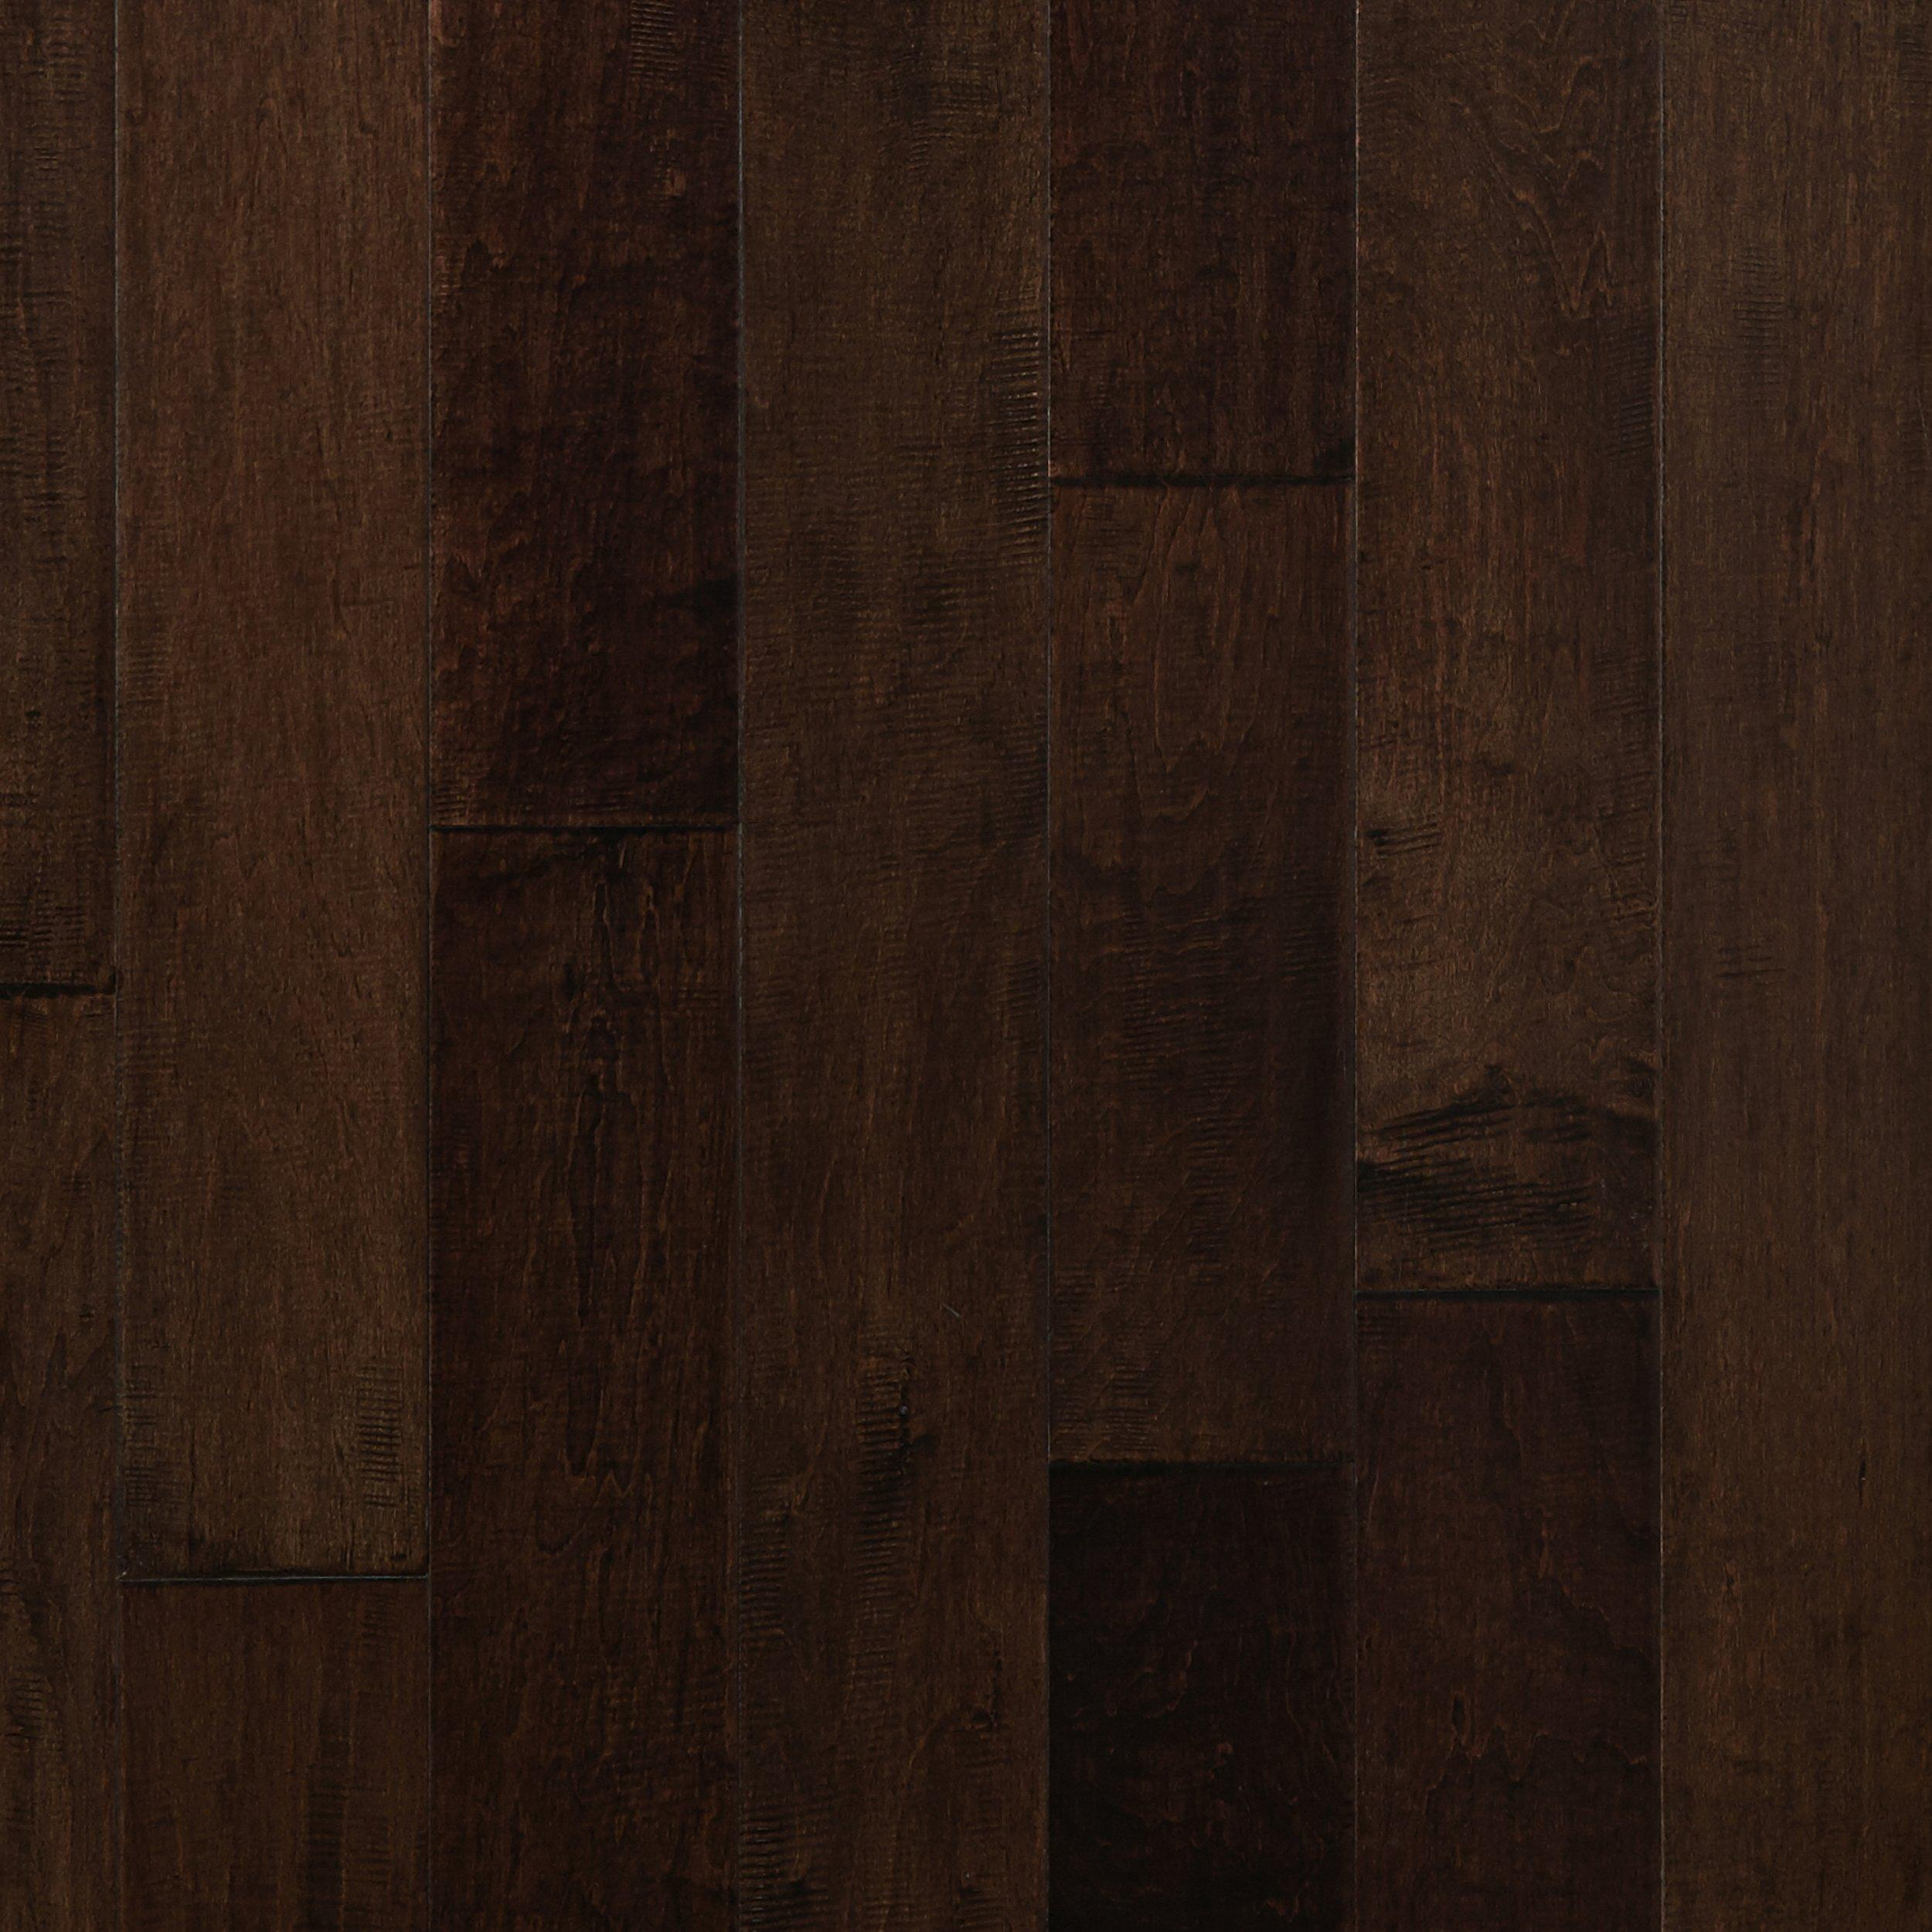 Floor Decor In Norco Ca Engineered Hardwood Floor Decor